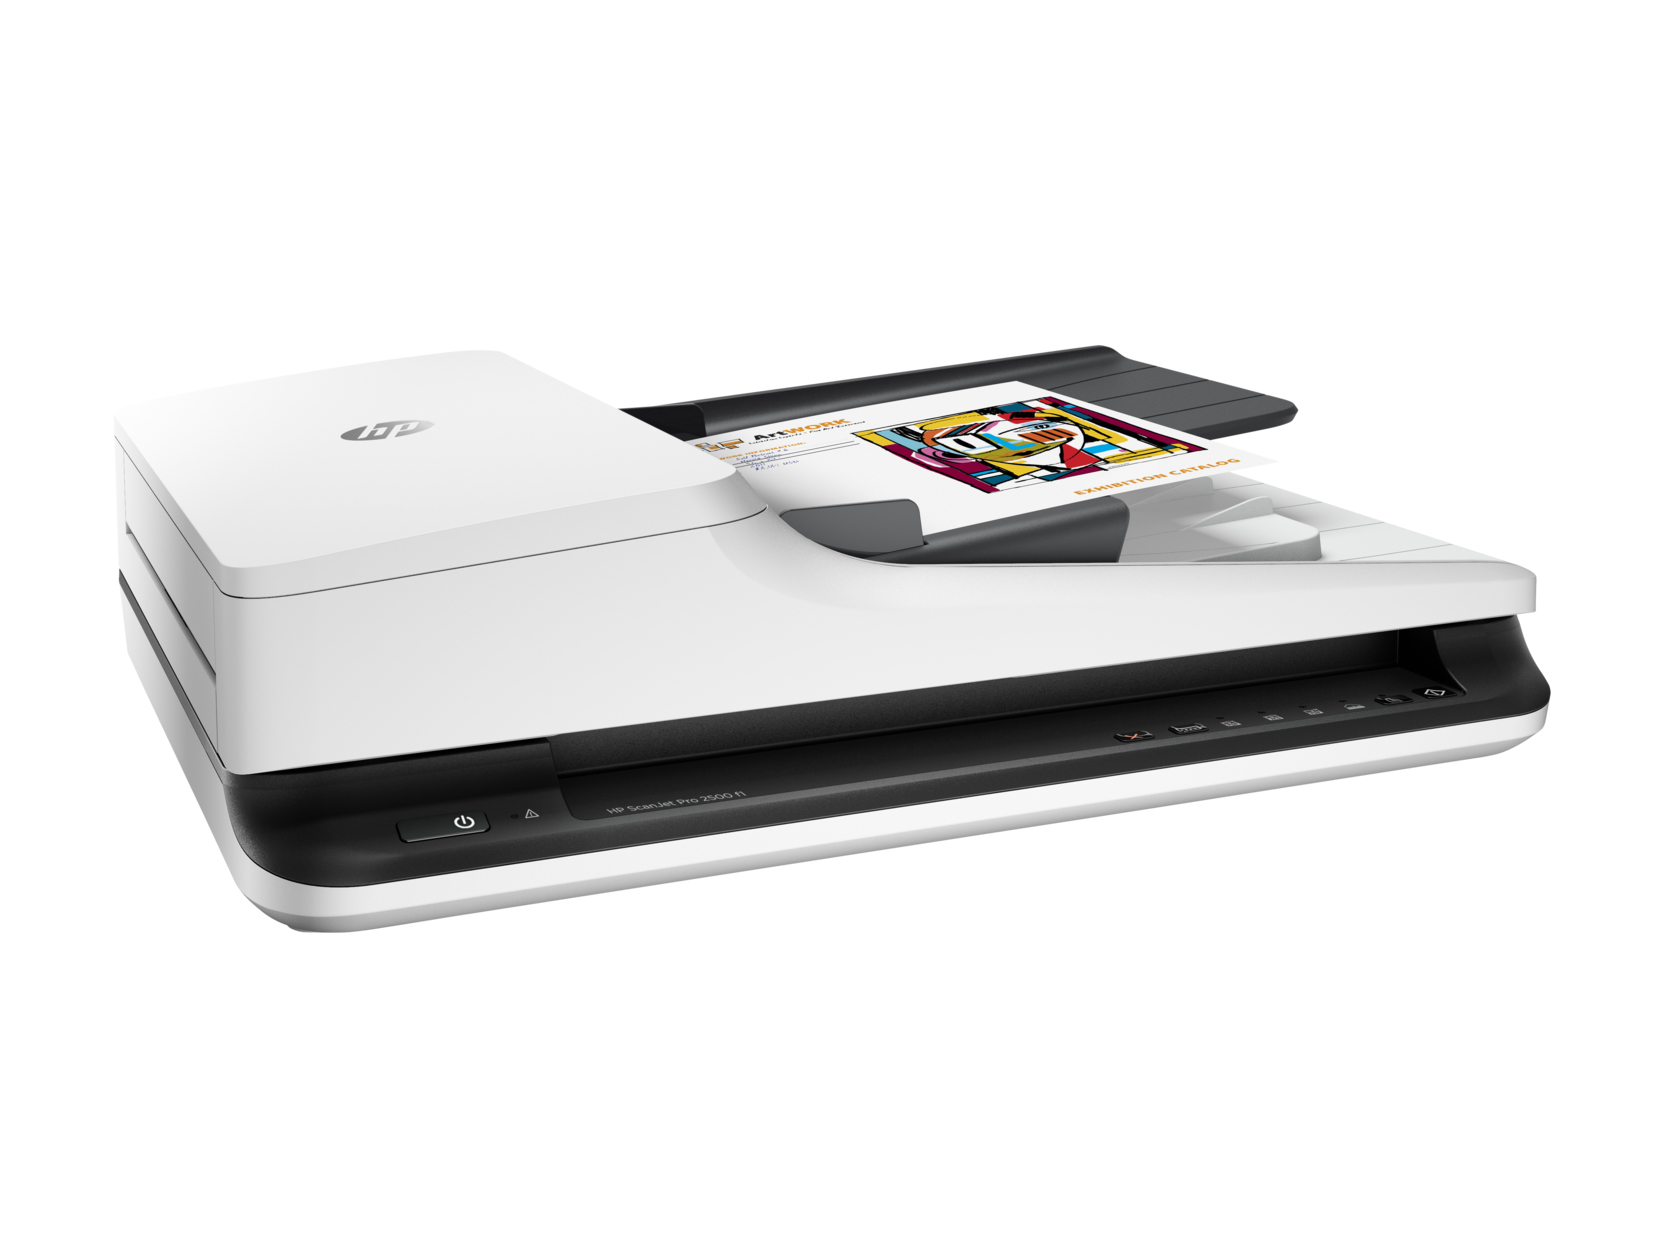 New Genuine HP Scanjet Pro 2500 F1 Flatbed Scanner White